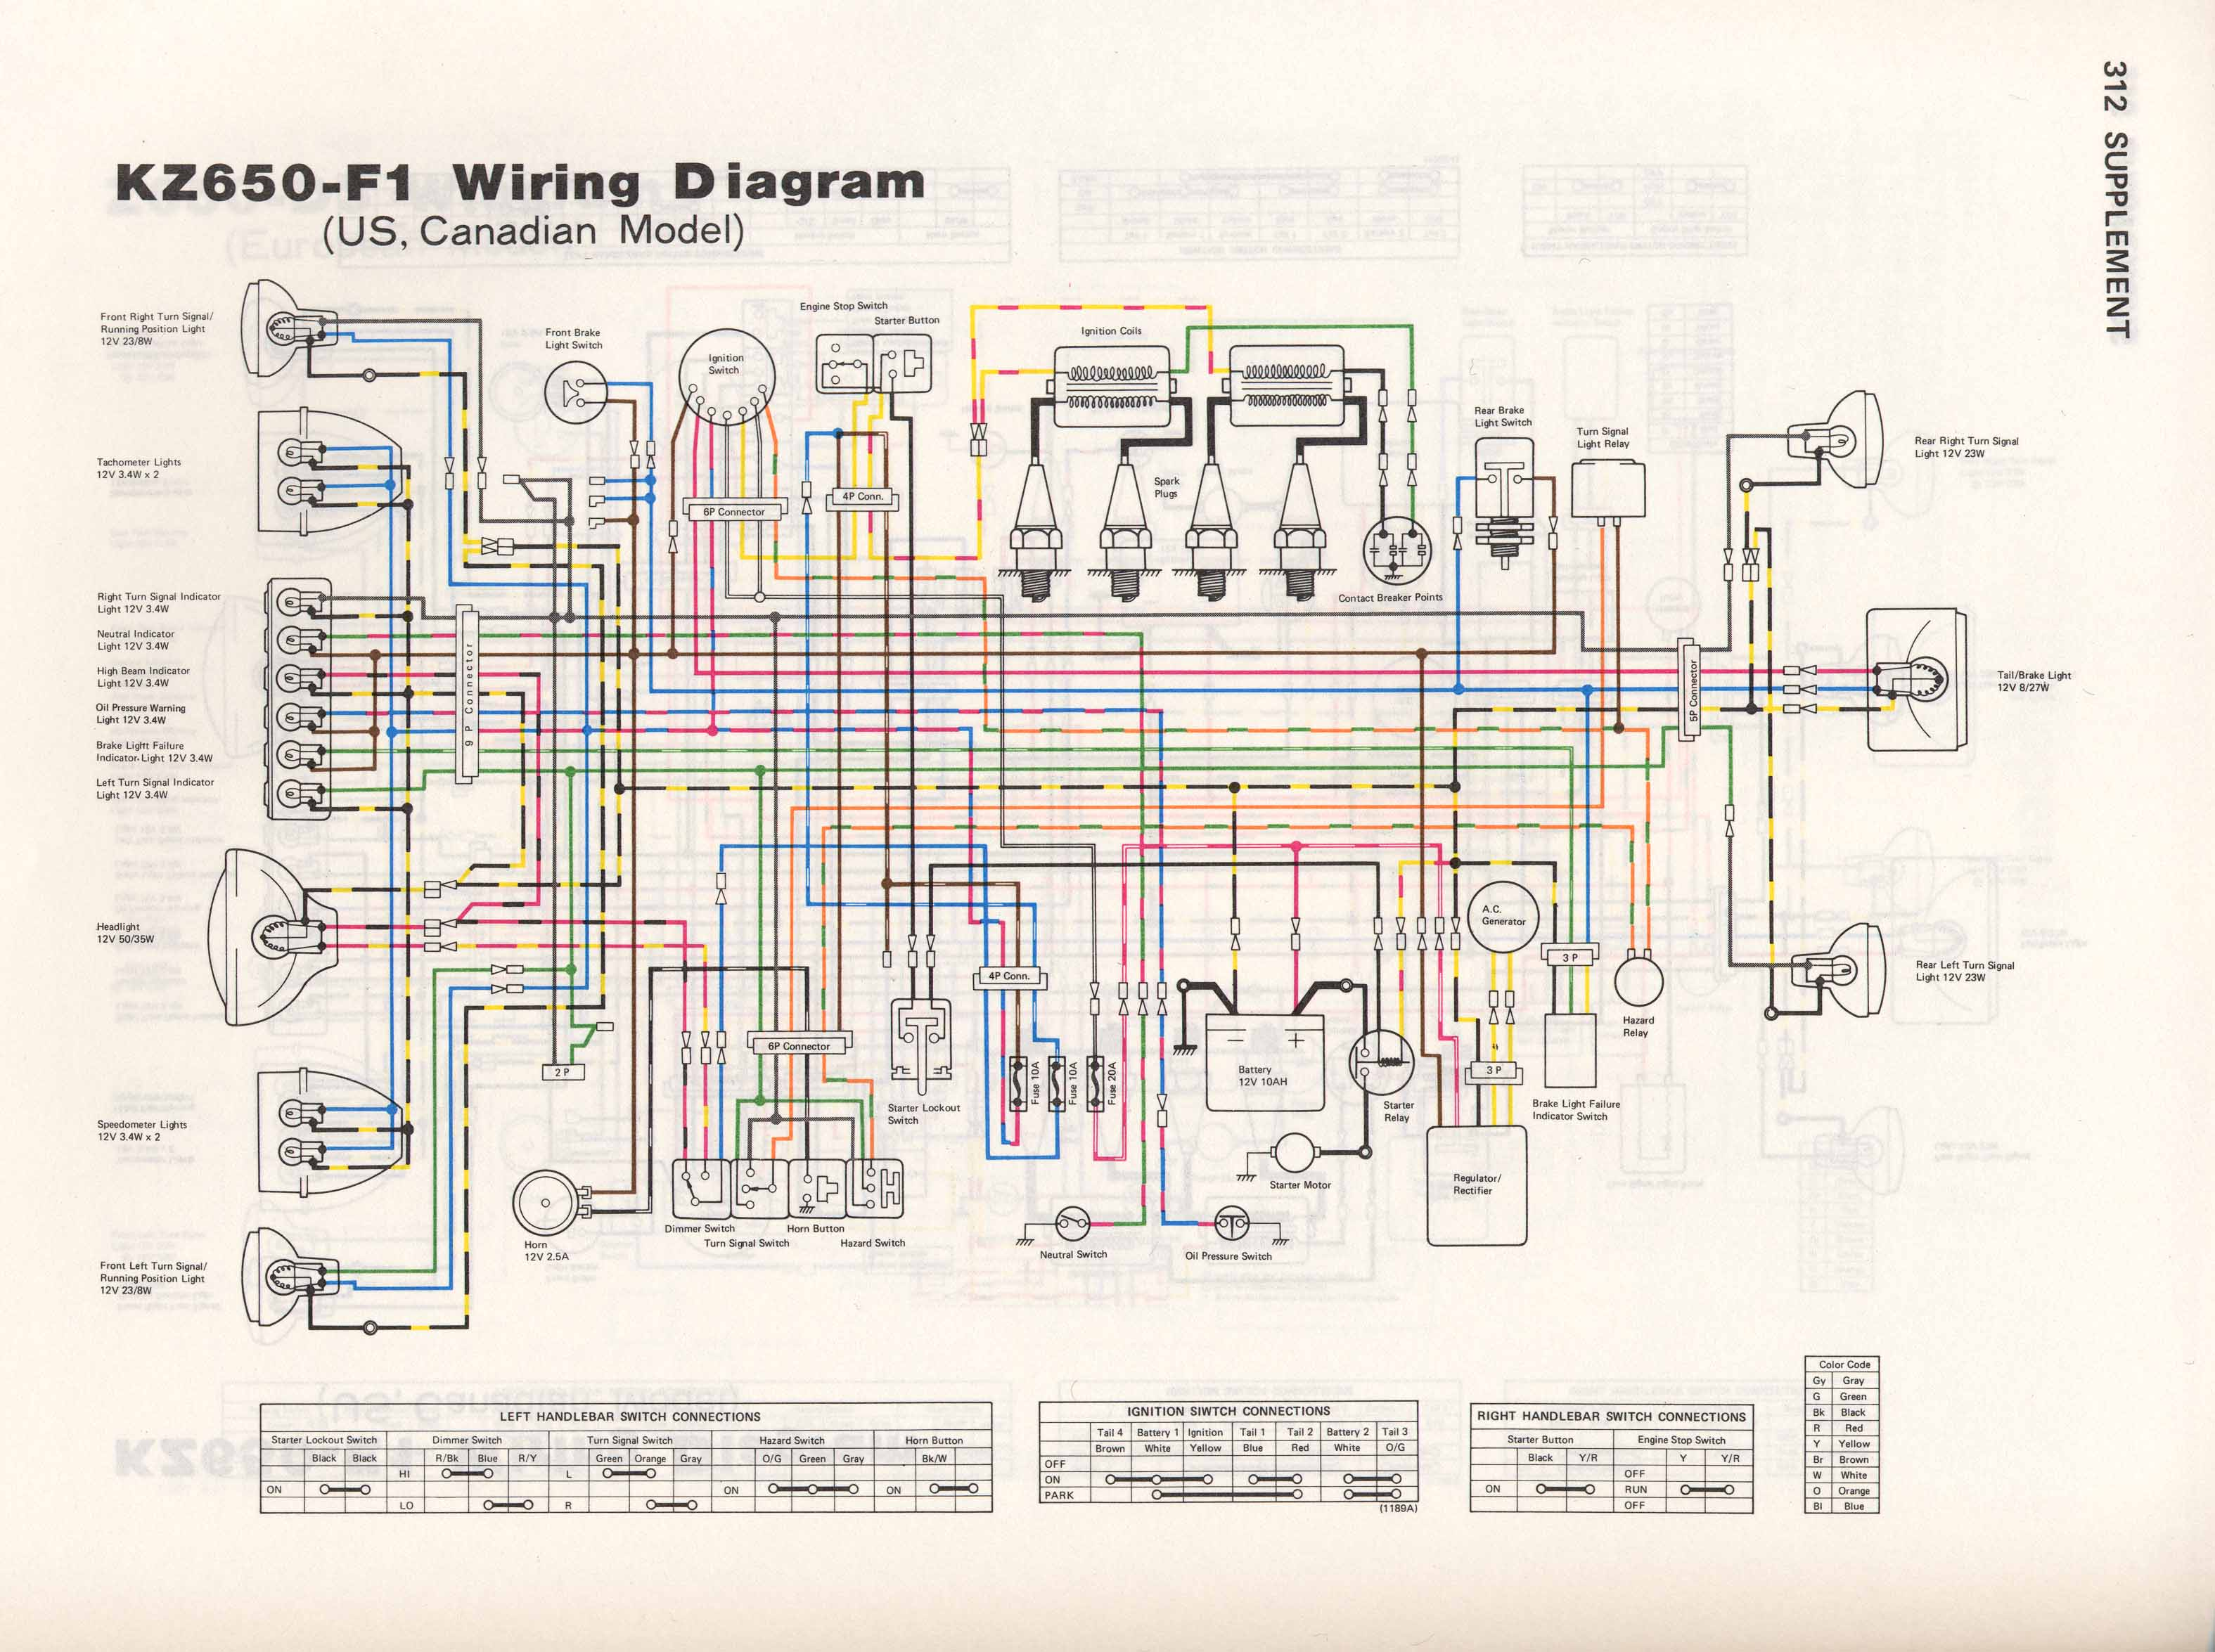 KZ650 F1 kawasaki kz650 wiring diagram vulcan 1500 wiring diagram \u2022 free 1981 kawasaki 440 ltd wiring diagram at n-0.co